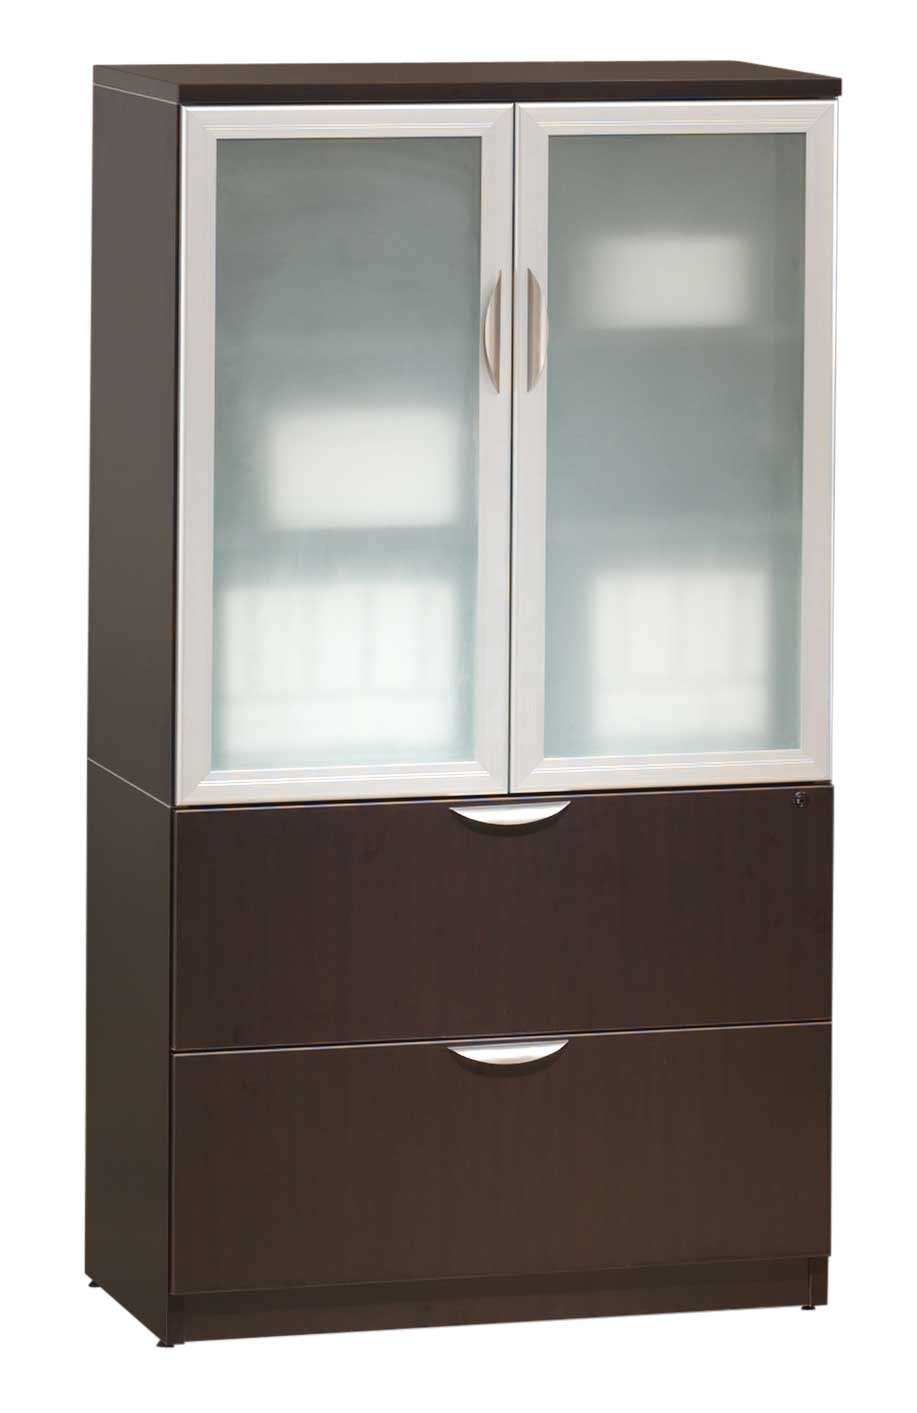 storage cabinet with glass doors homesfeed. Black Bedroom Furniture Sets. Home Design Ideas